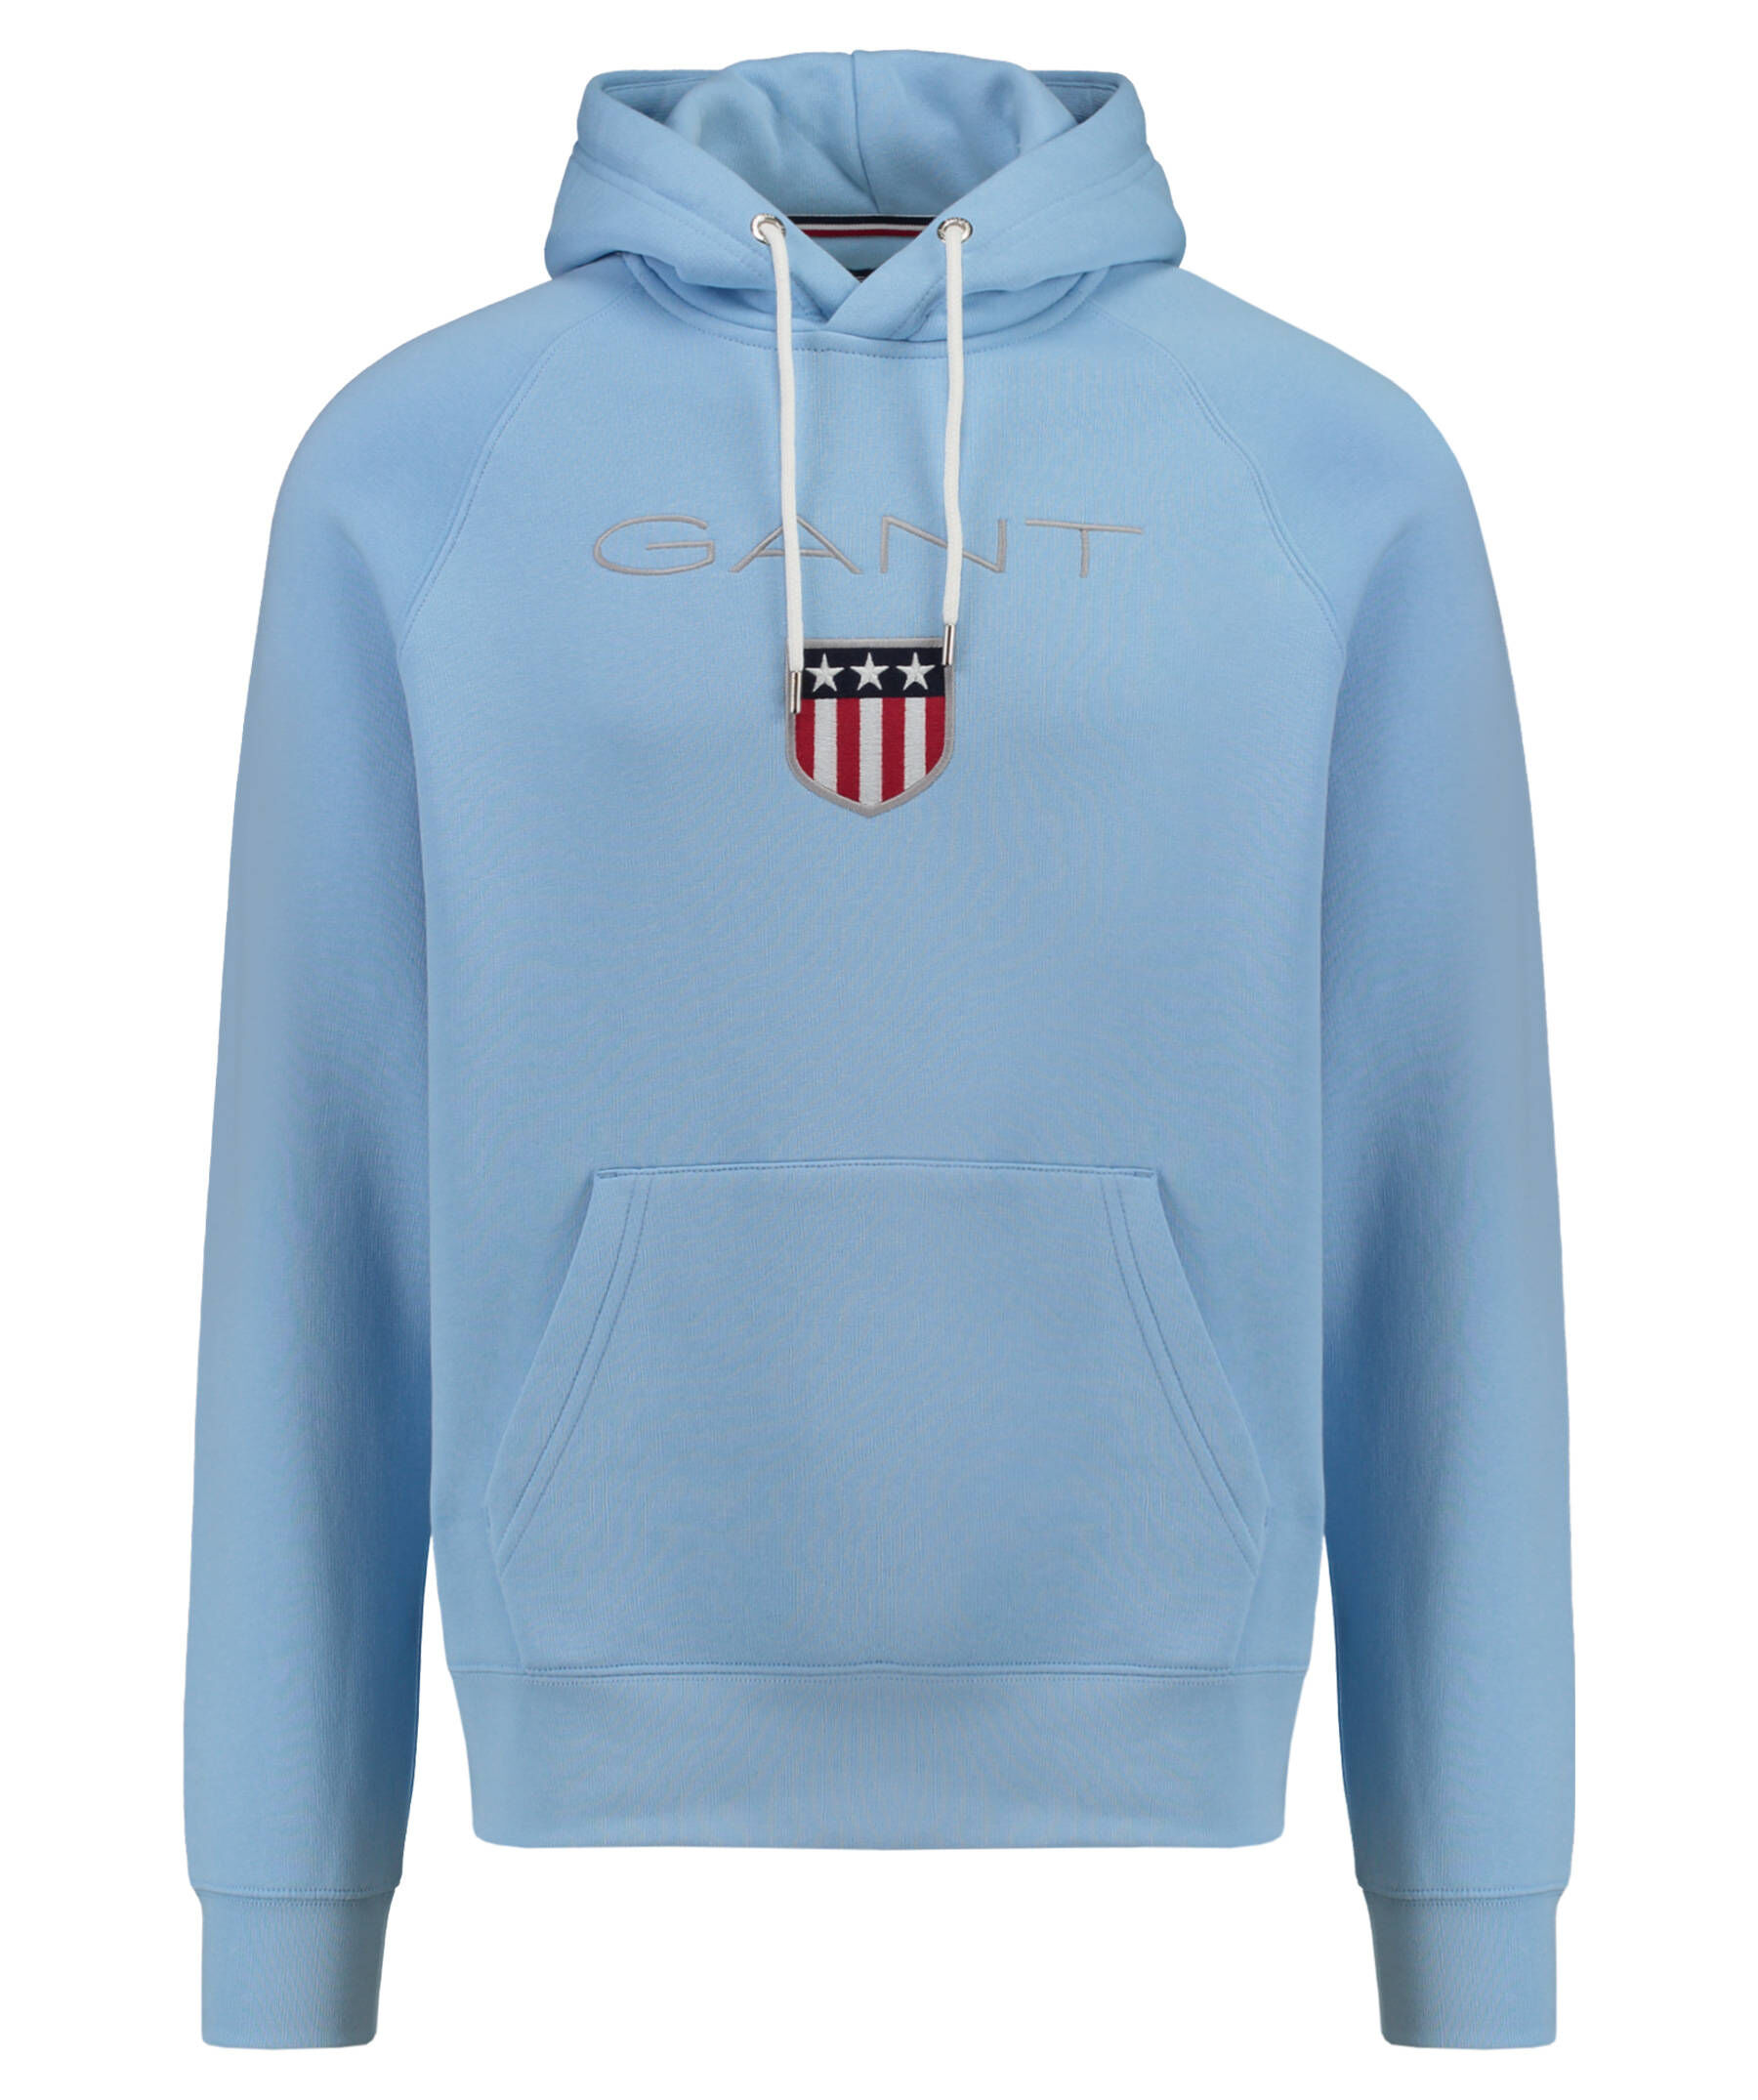 gant herren kapuzensweatshirt shield sweat hoodie blau. Black Bedroom Furniture Sets. Home Design Ideas